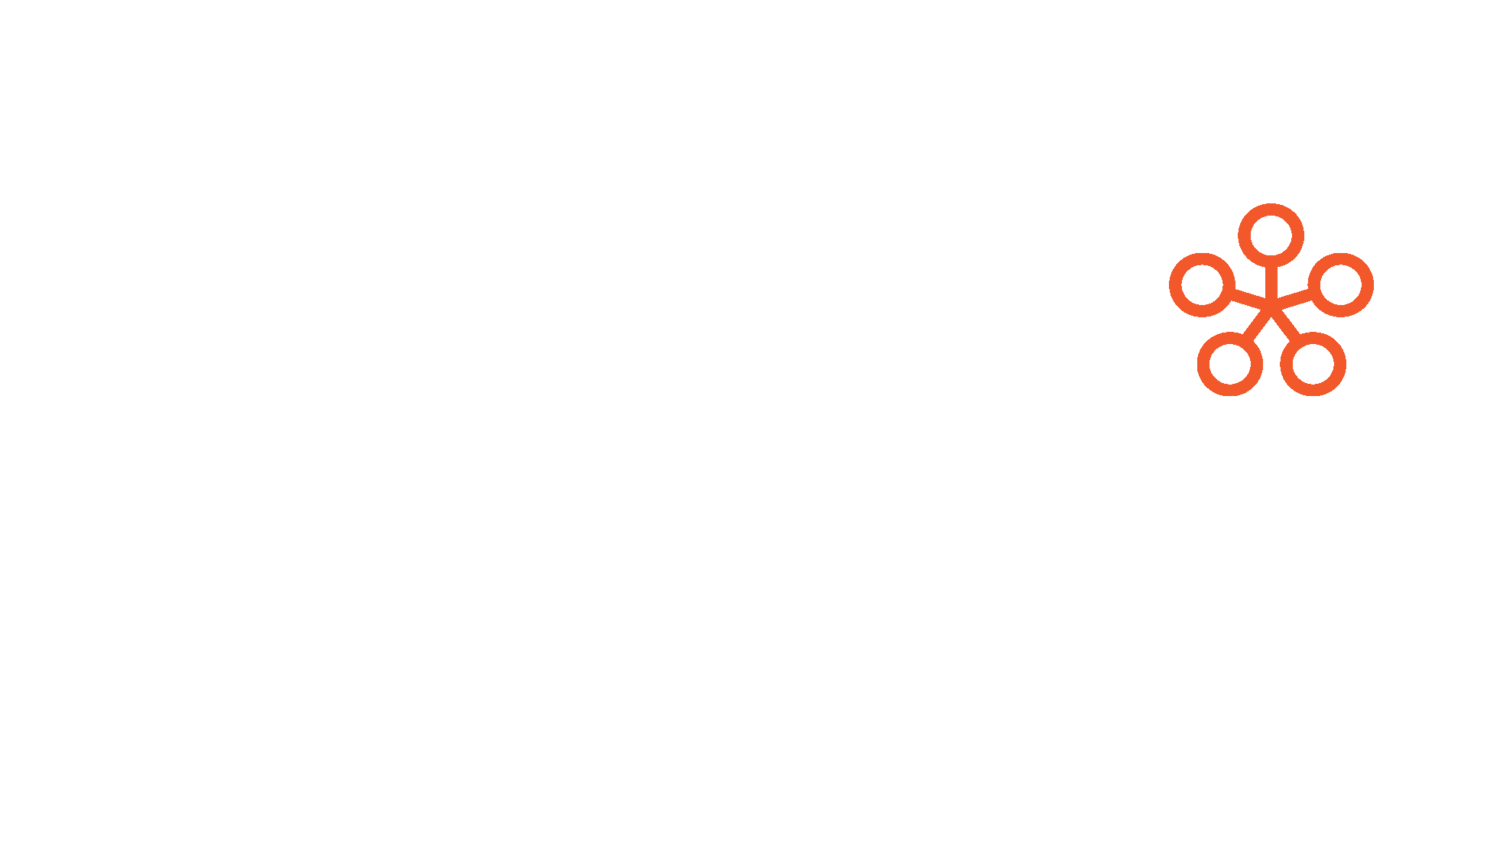 Sioux Falls Up & Coming